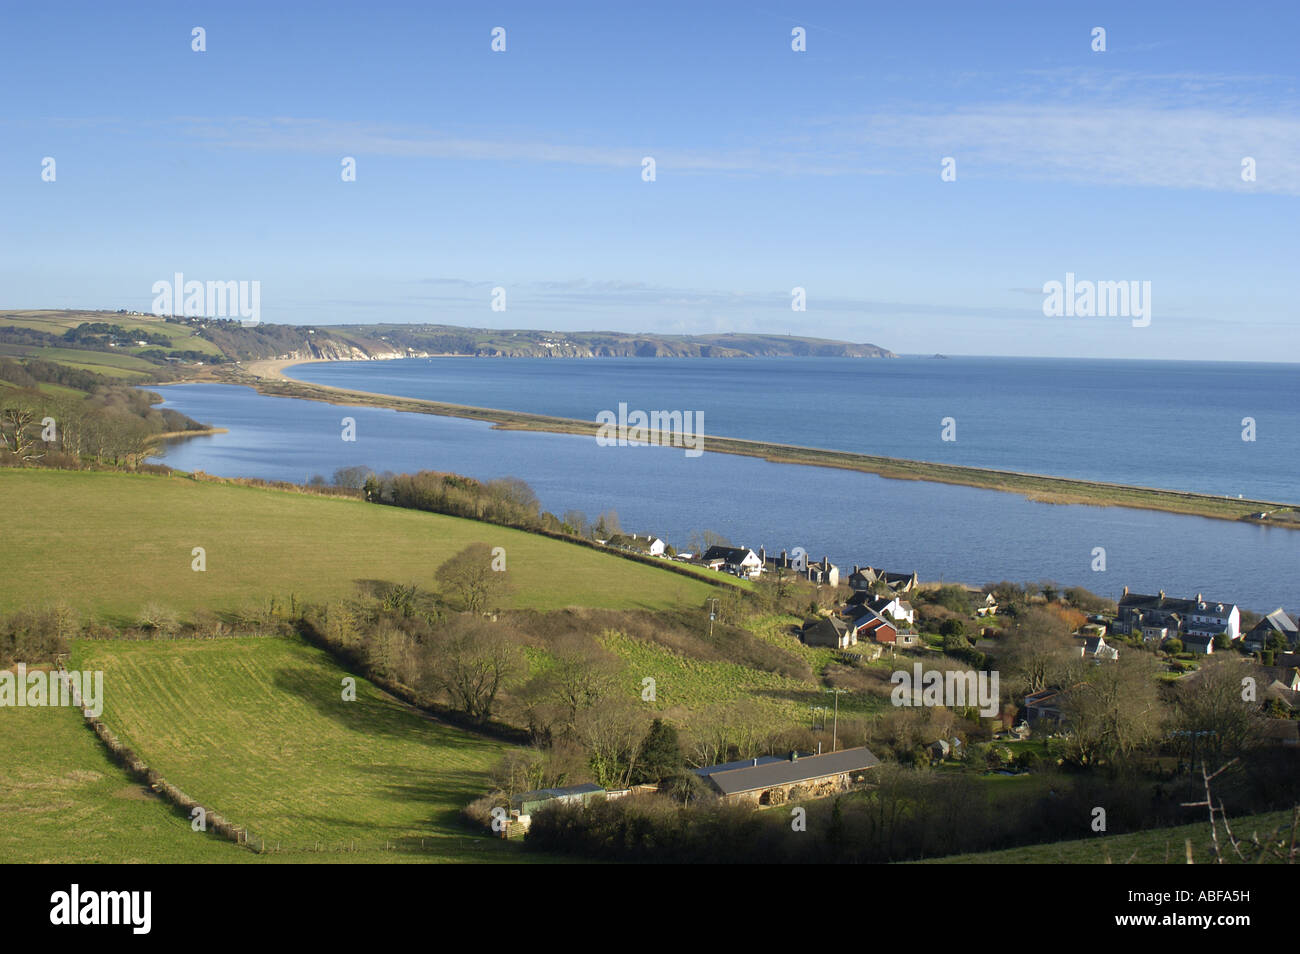 Slapton Ley National Nature Reserve and lake south Devon England - Stock Image